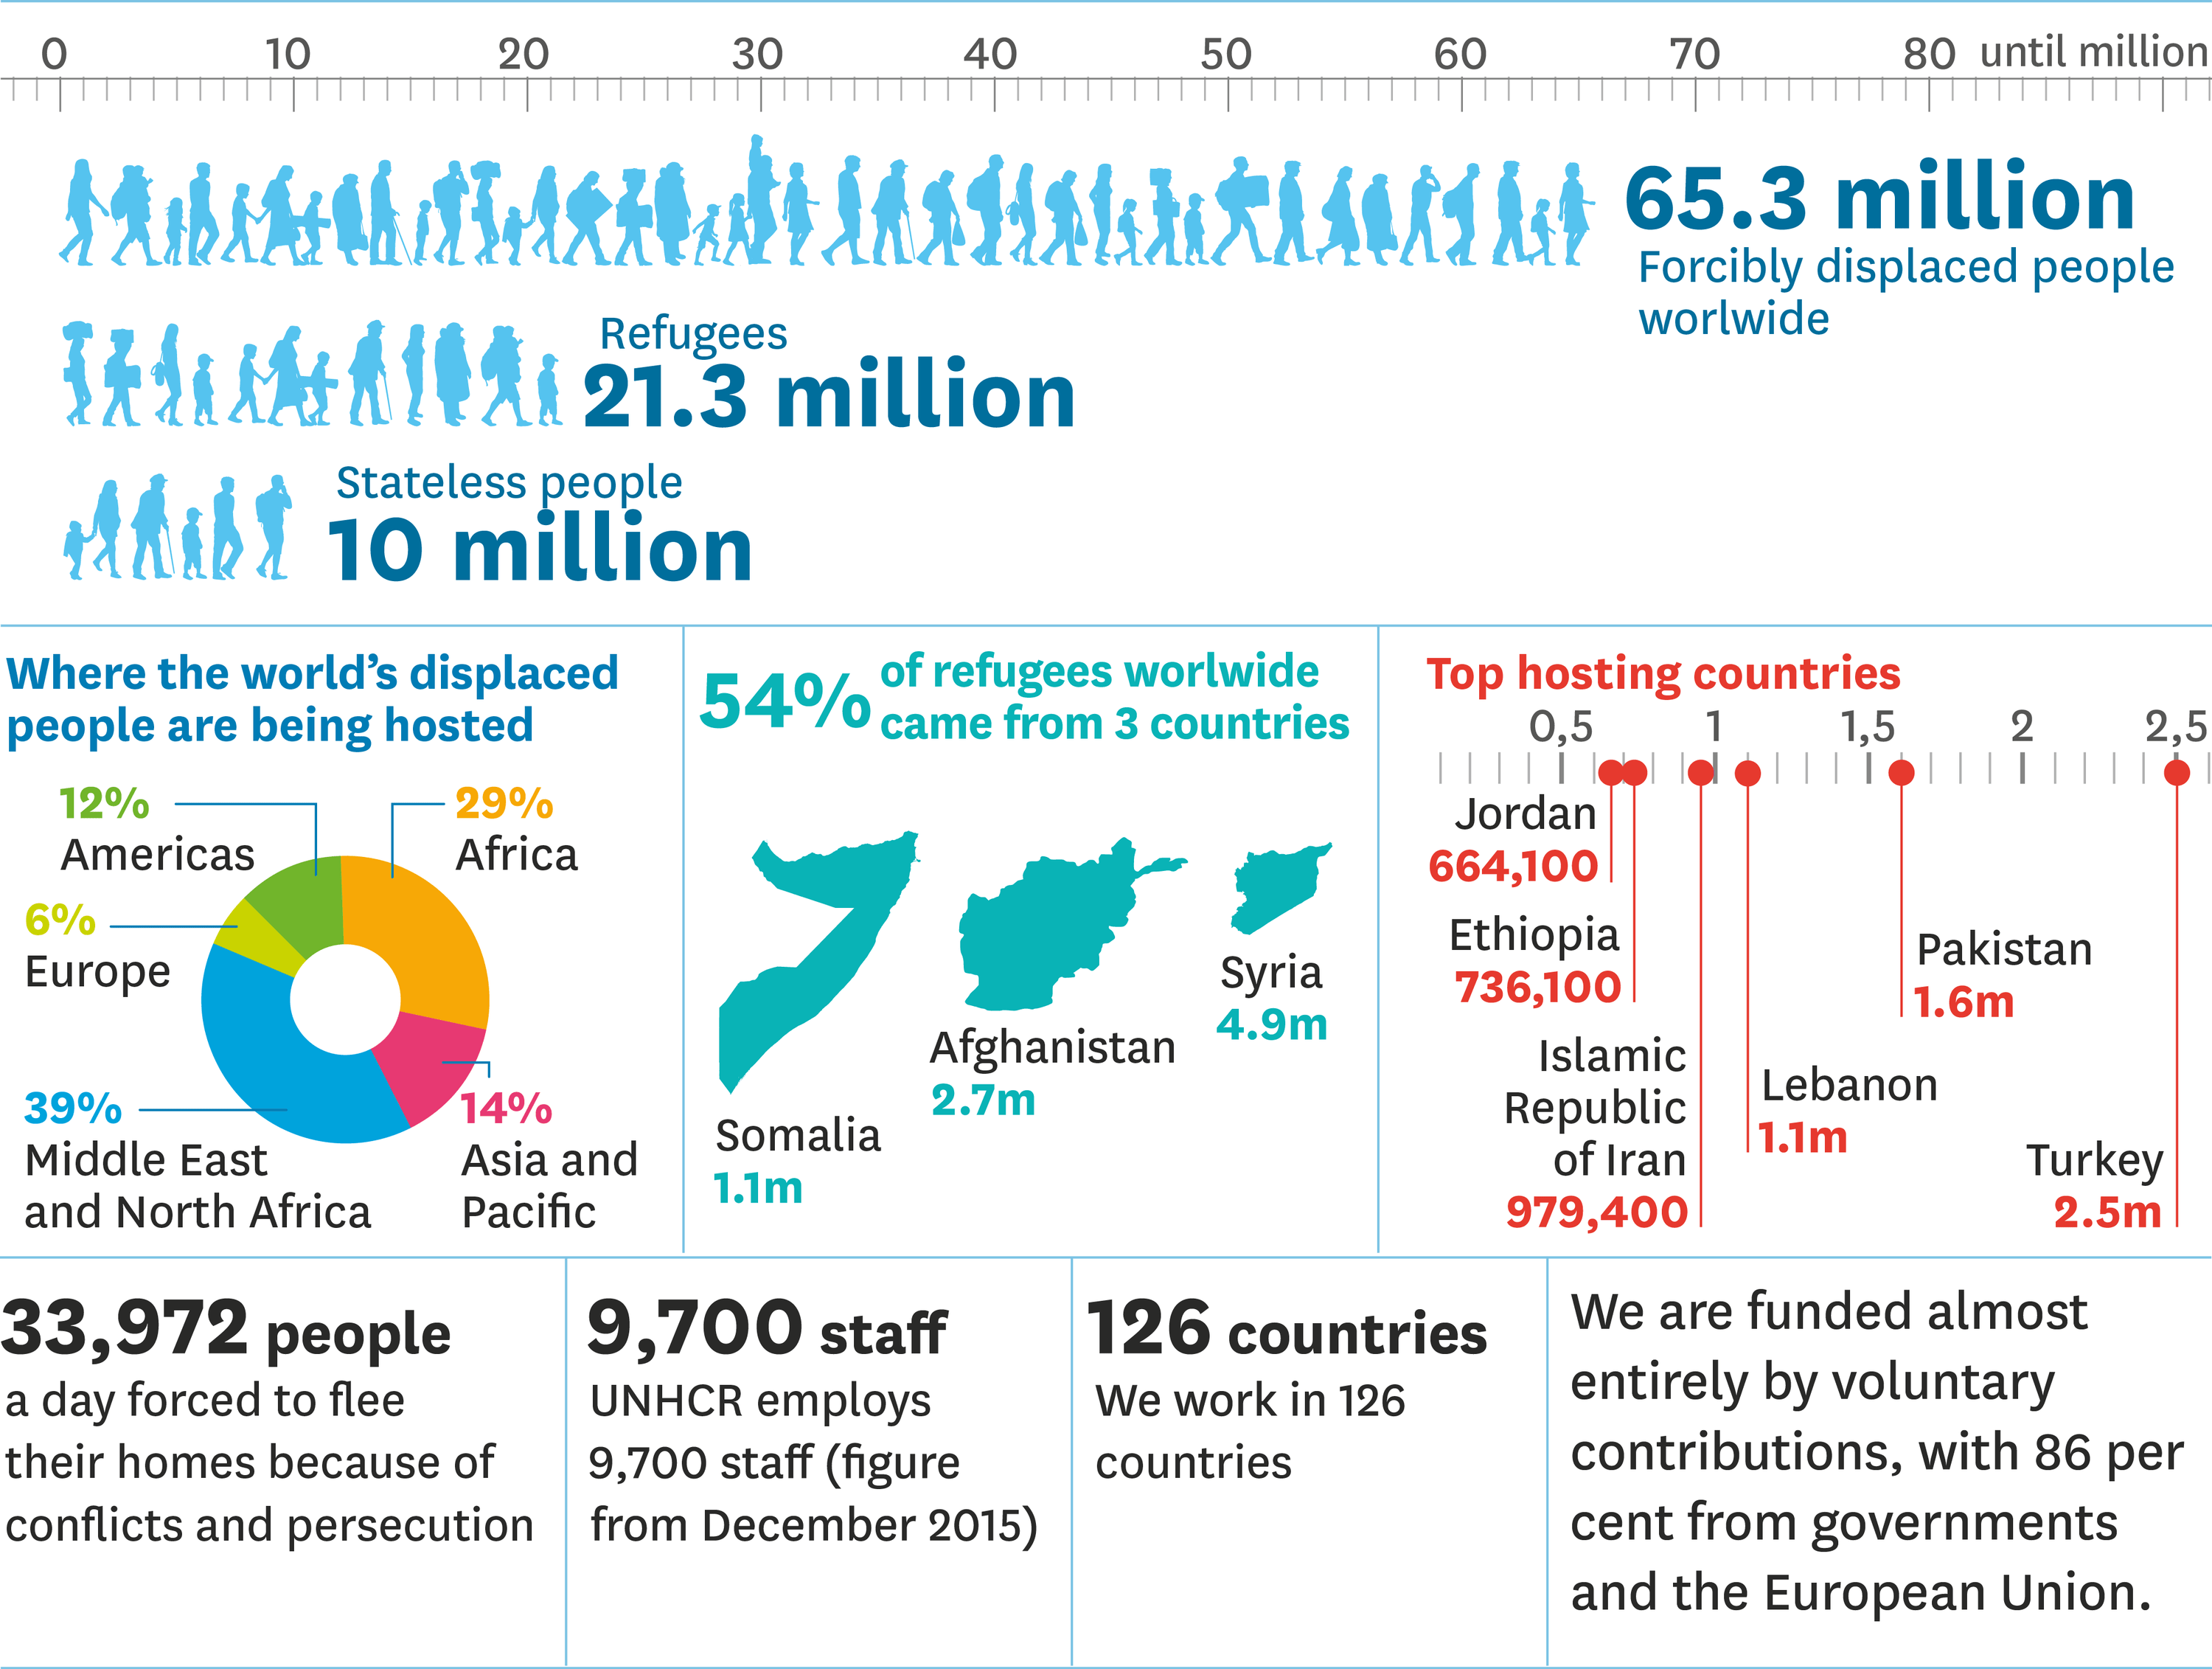 The world's displaced people